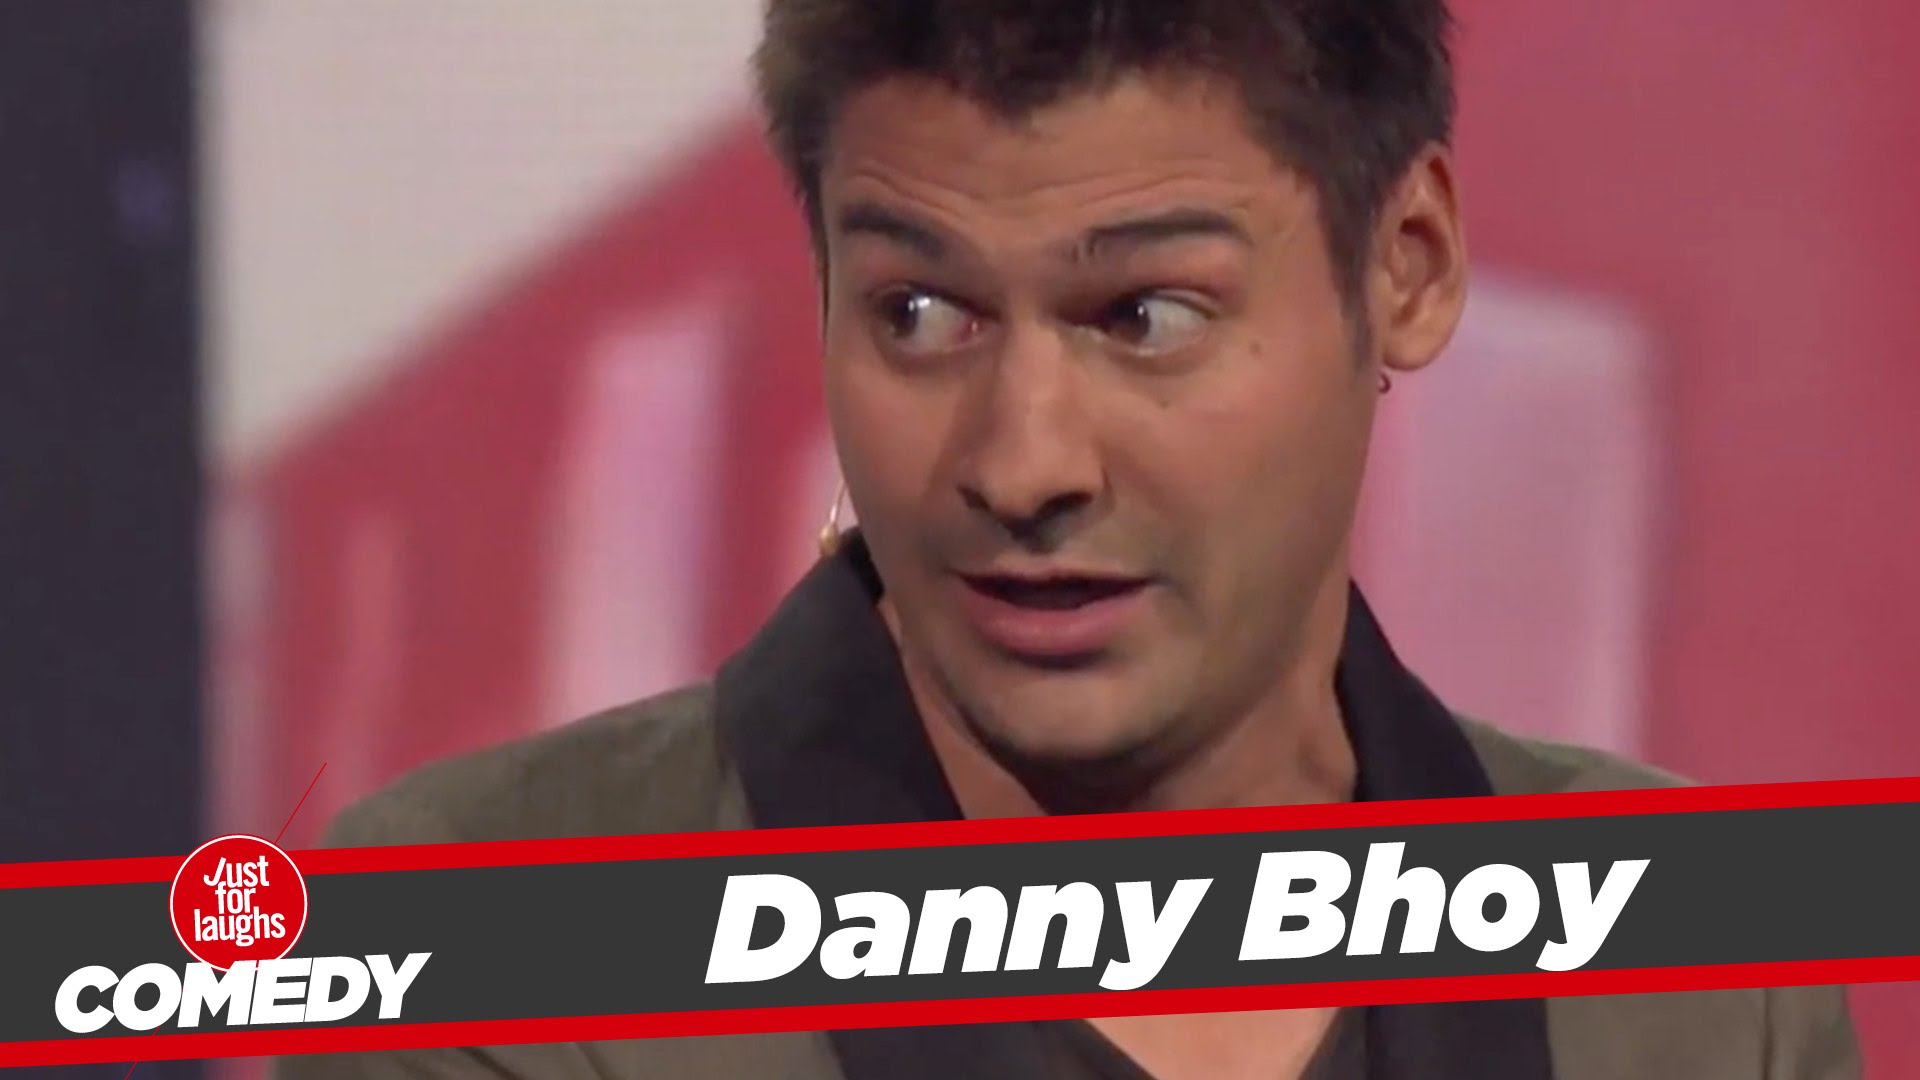 Danny Bhoy Stand Up - Whatsapp Forwards, Jokes, Riddles and Puzzles